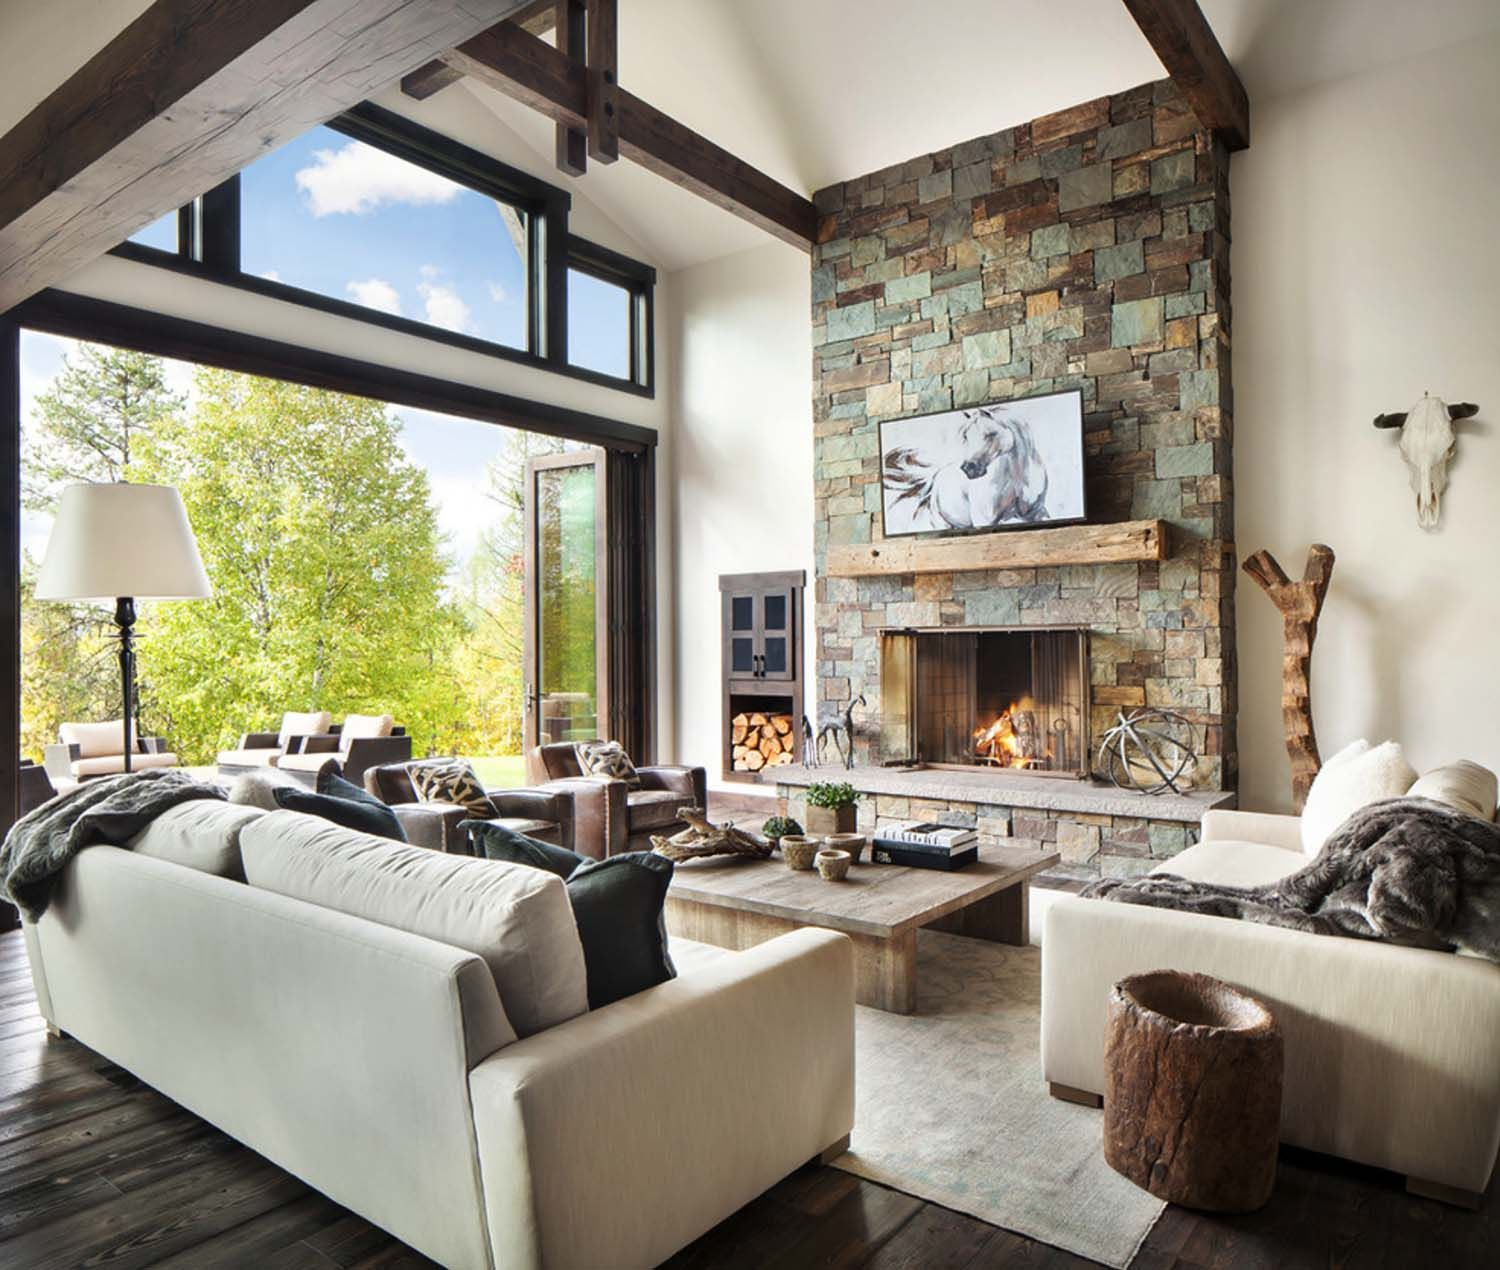 Rustic Modern Dwelling Nestled In The Northern Rocky